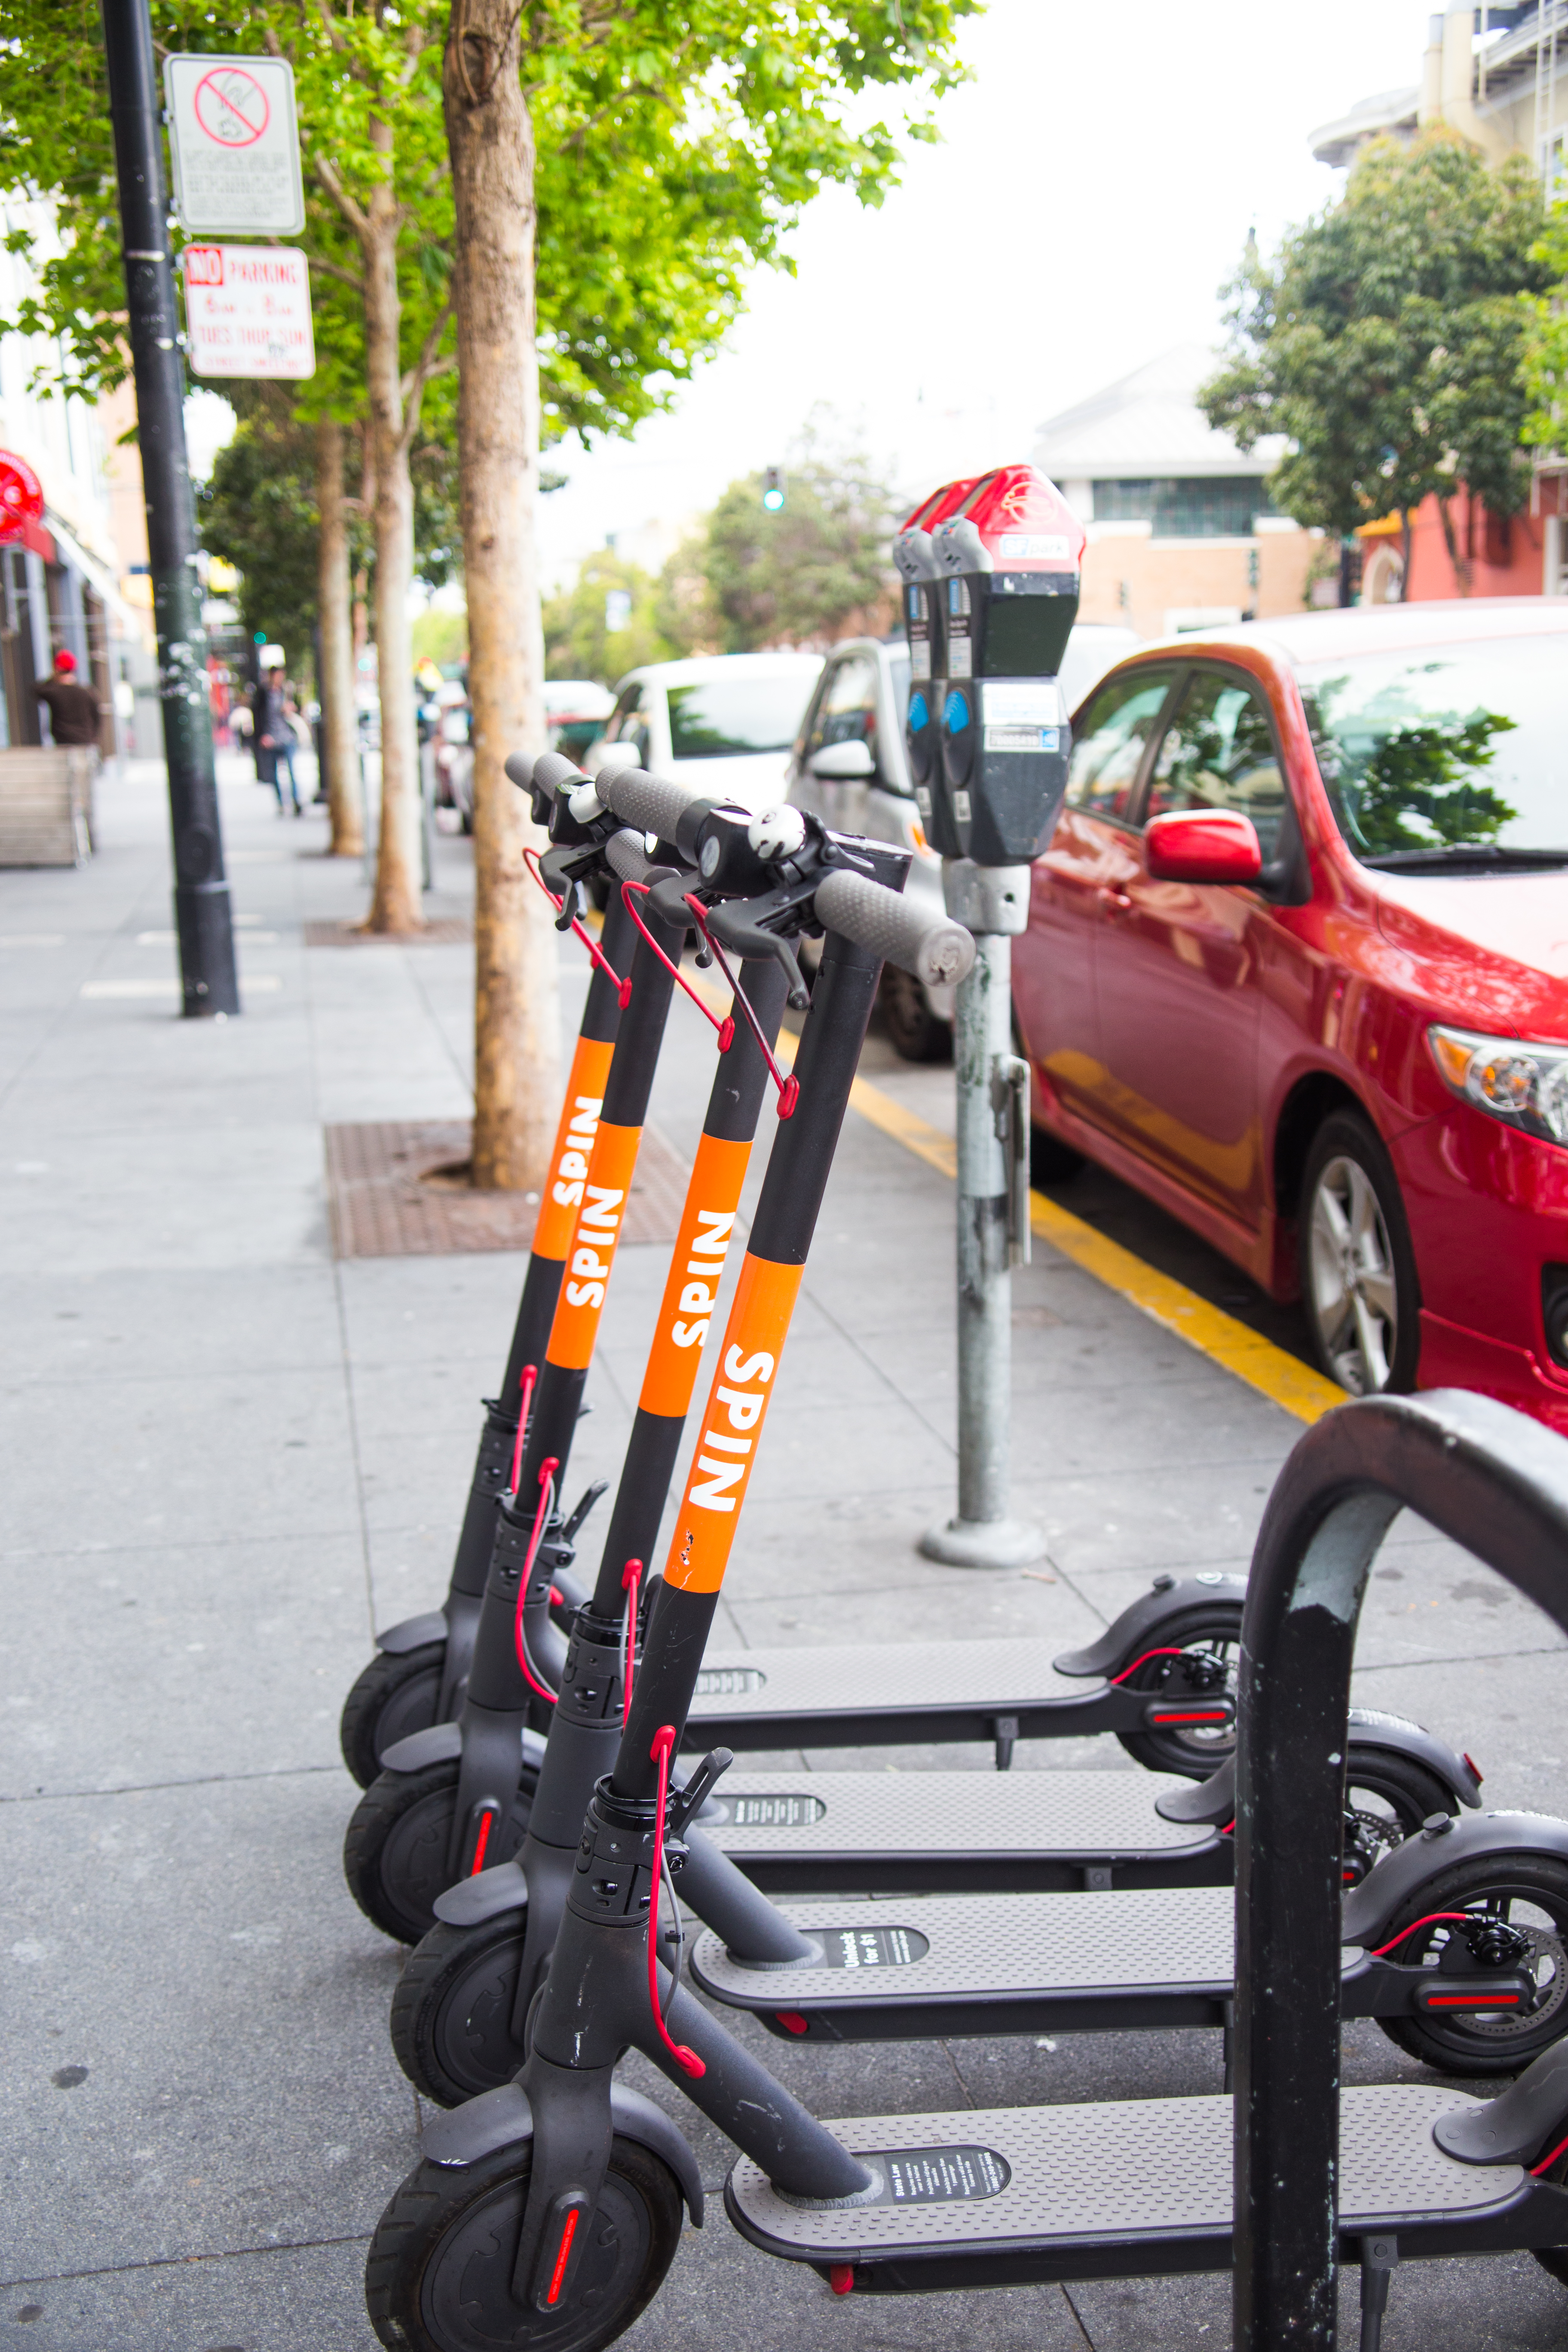 Spin scooters (with orange labels) parked on sidewalk in front of parking meter and red car